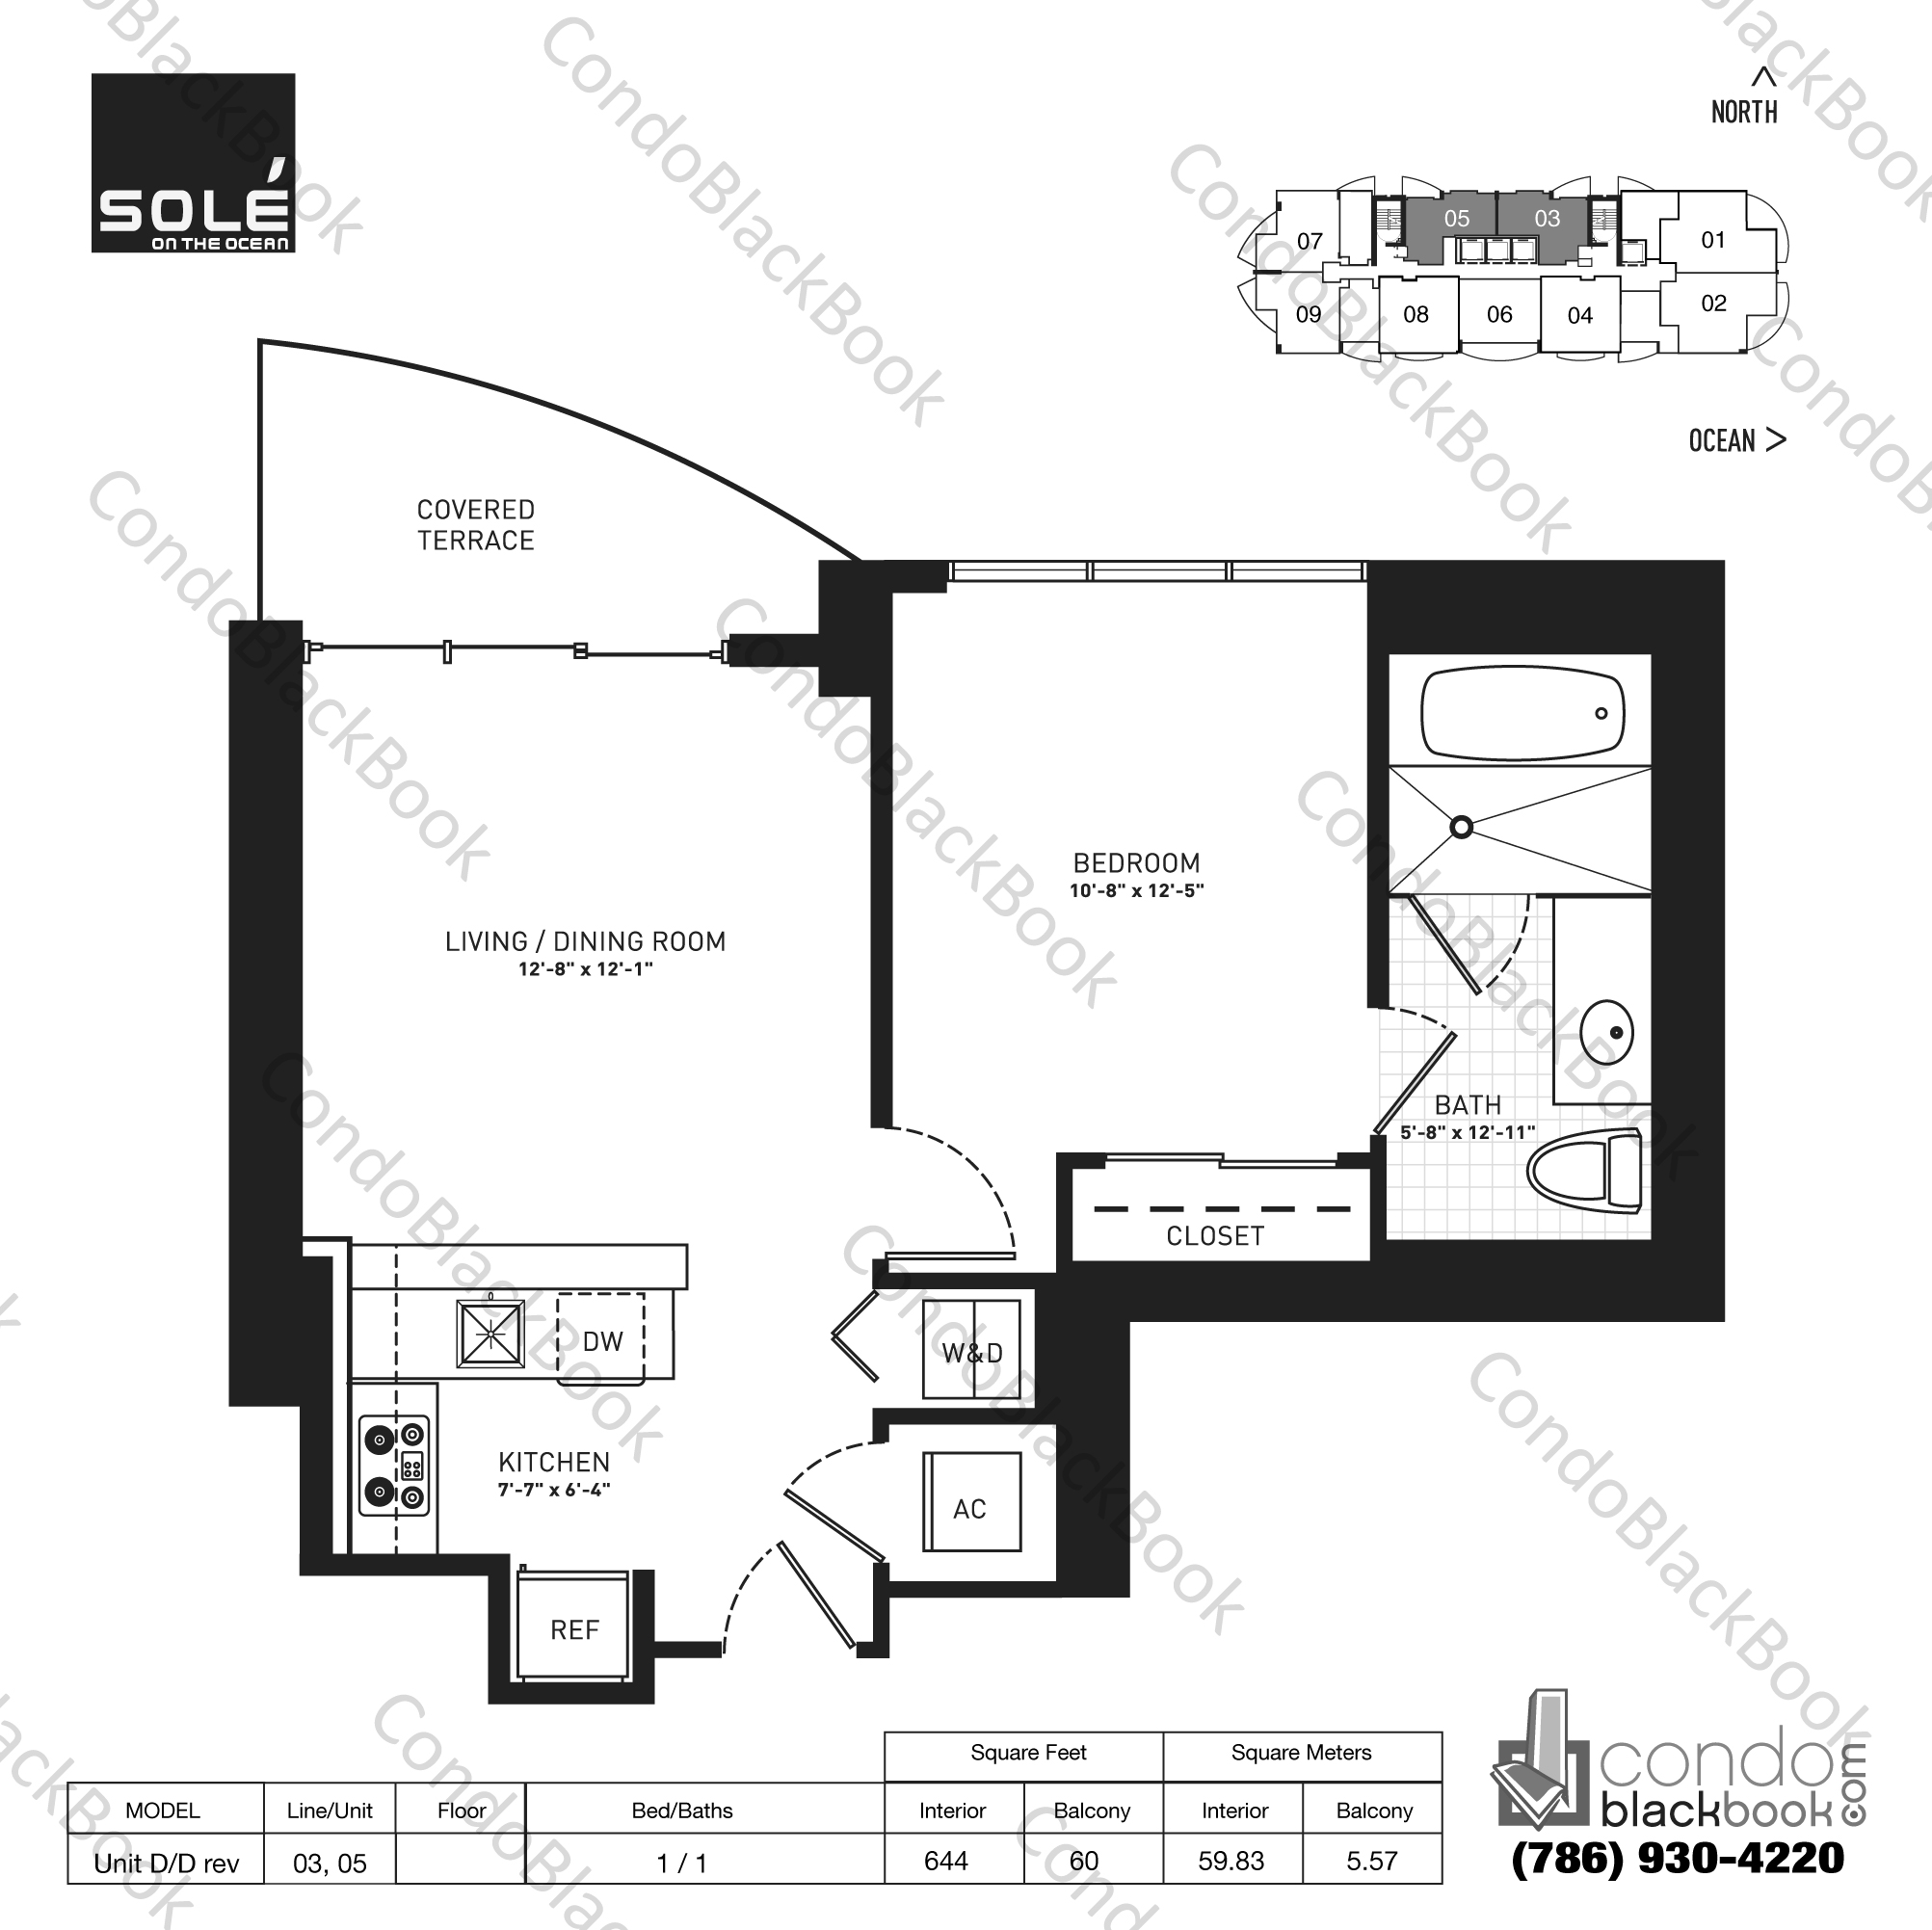 Floor plan for Sole Sunny Isles Beach, model Unit D/D rev, line 03,05, 1 / 1 bedrooms, 644 sq ft